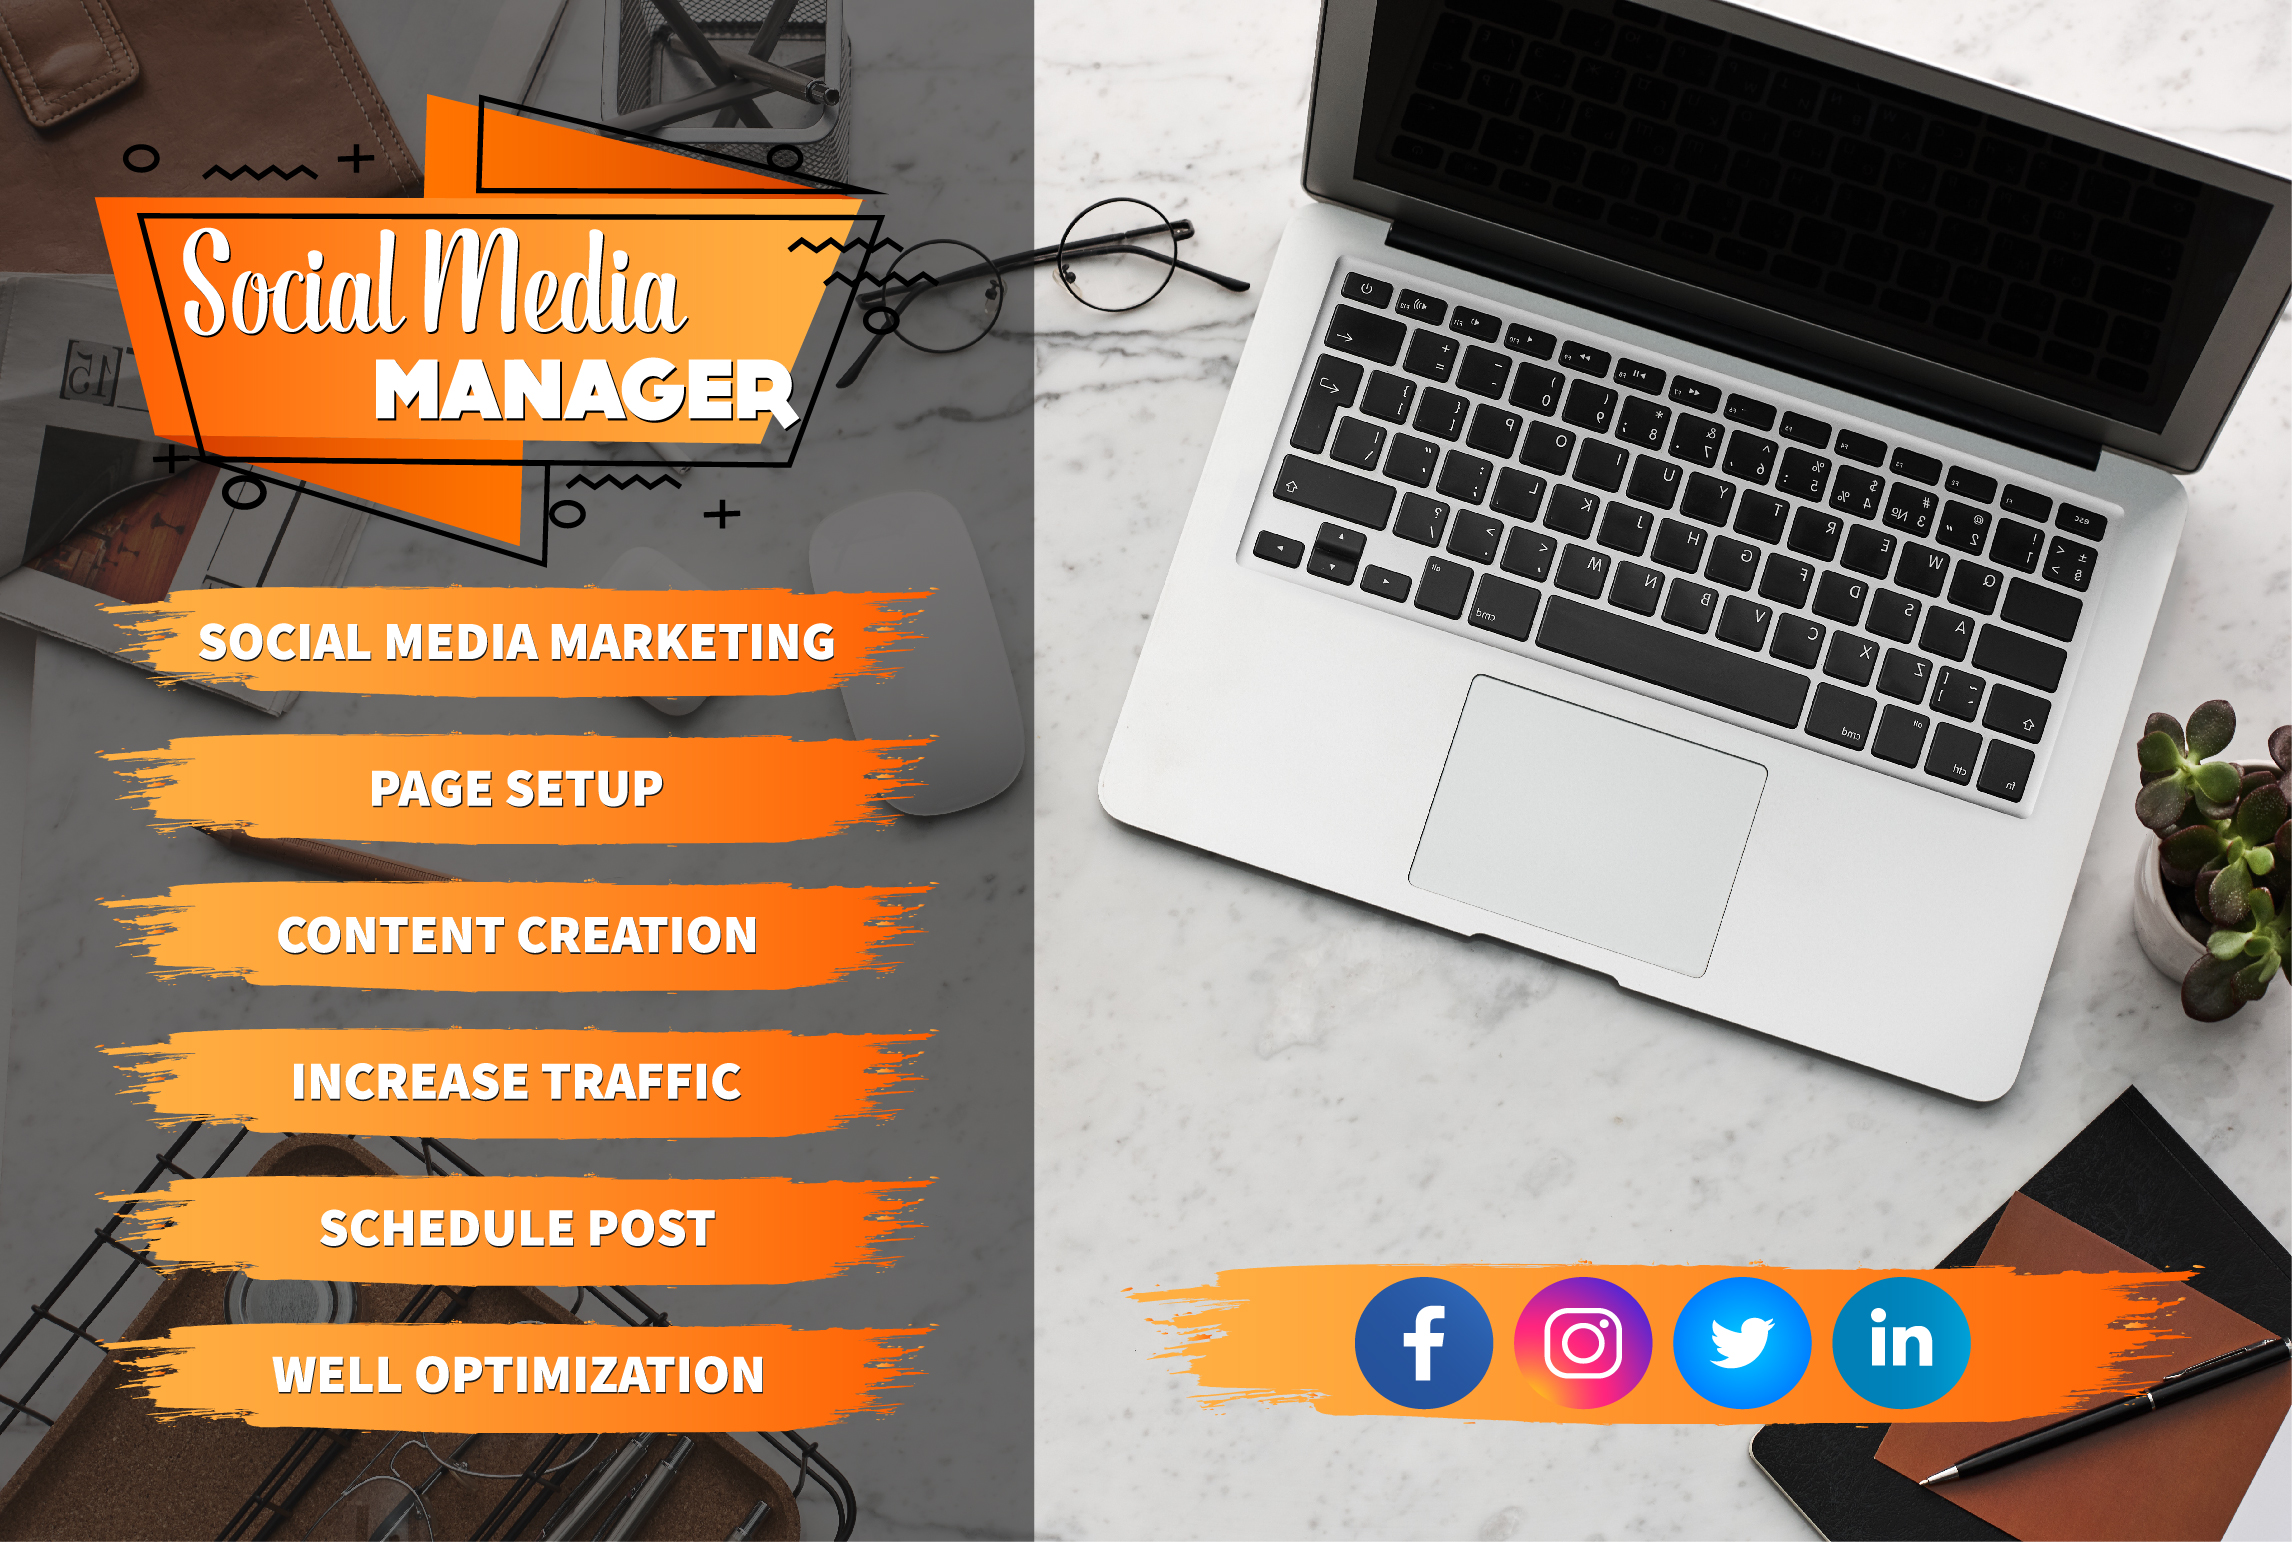 I will be your expert social media marketing manager & content creator